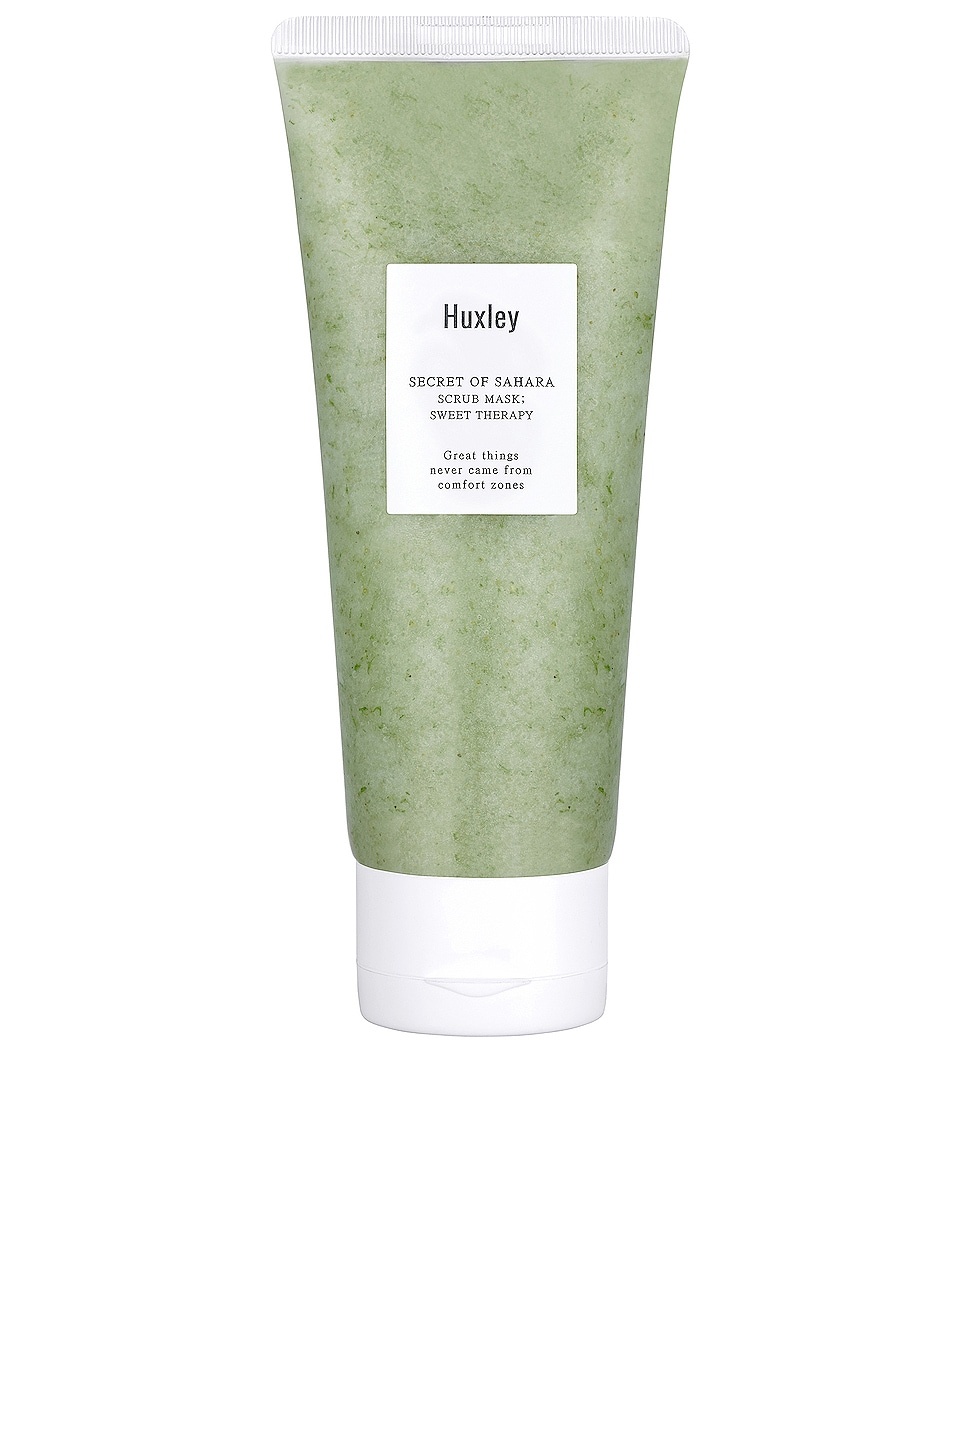 Huxley MASCARA FACIAL SWEET THERAPY